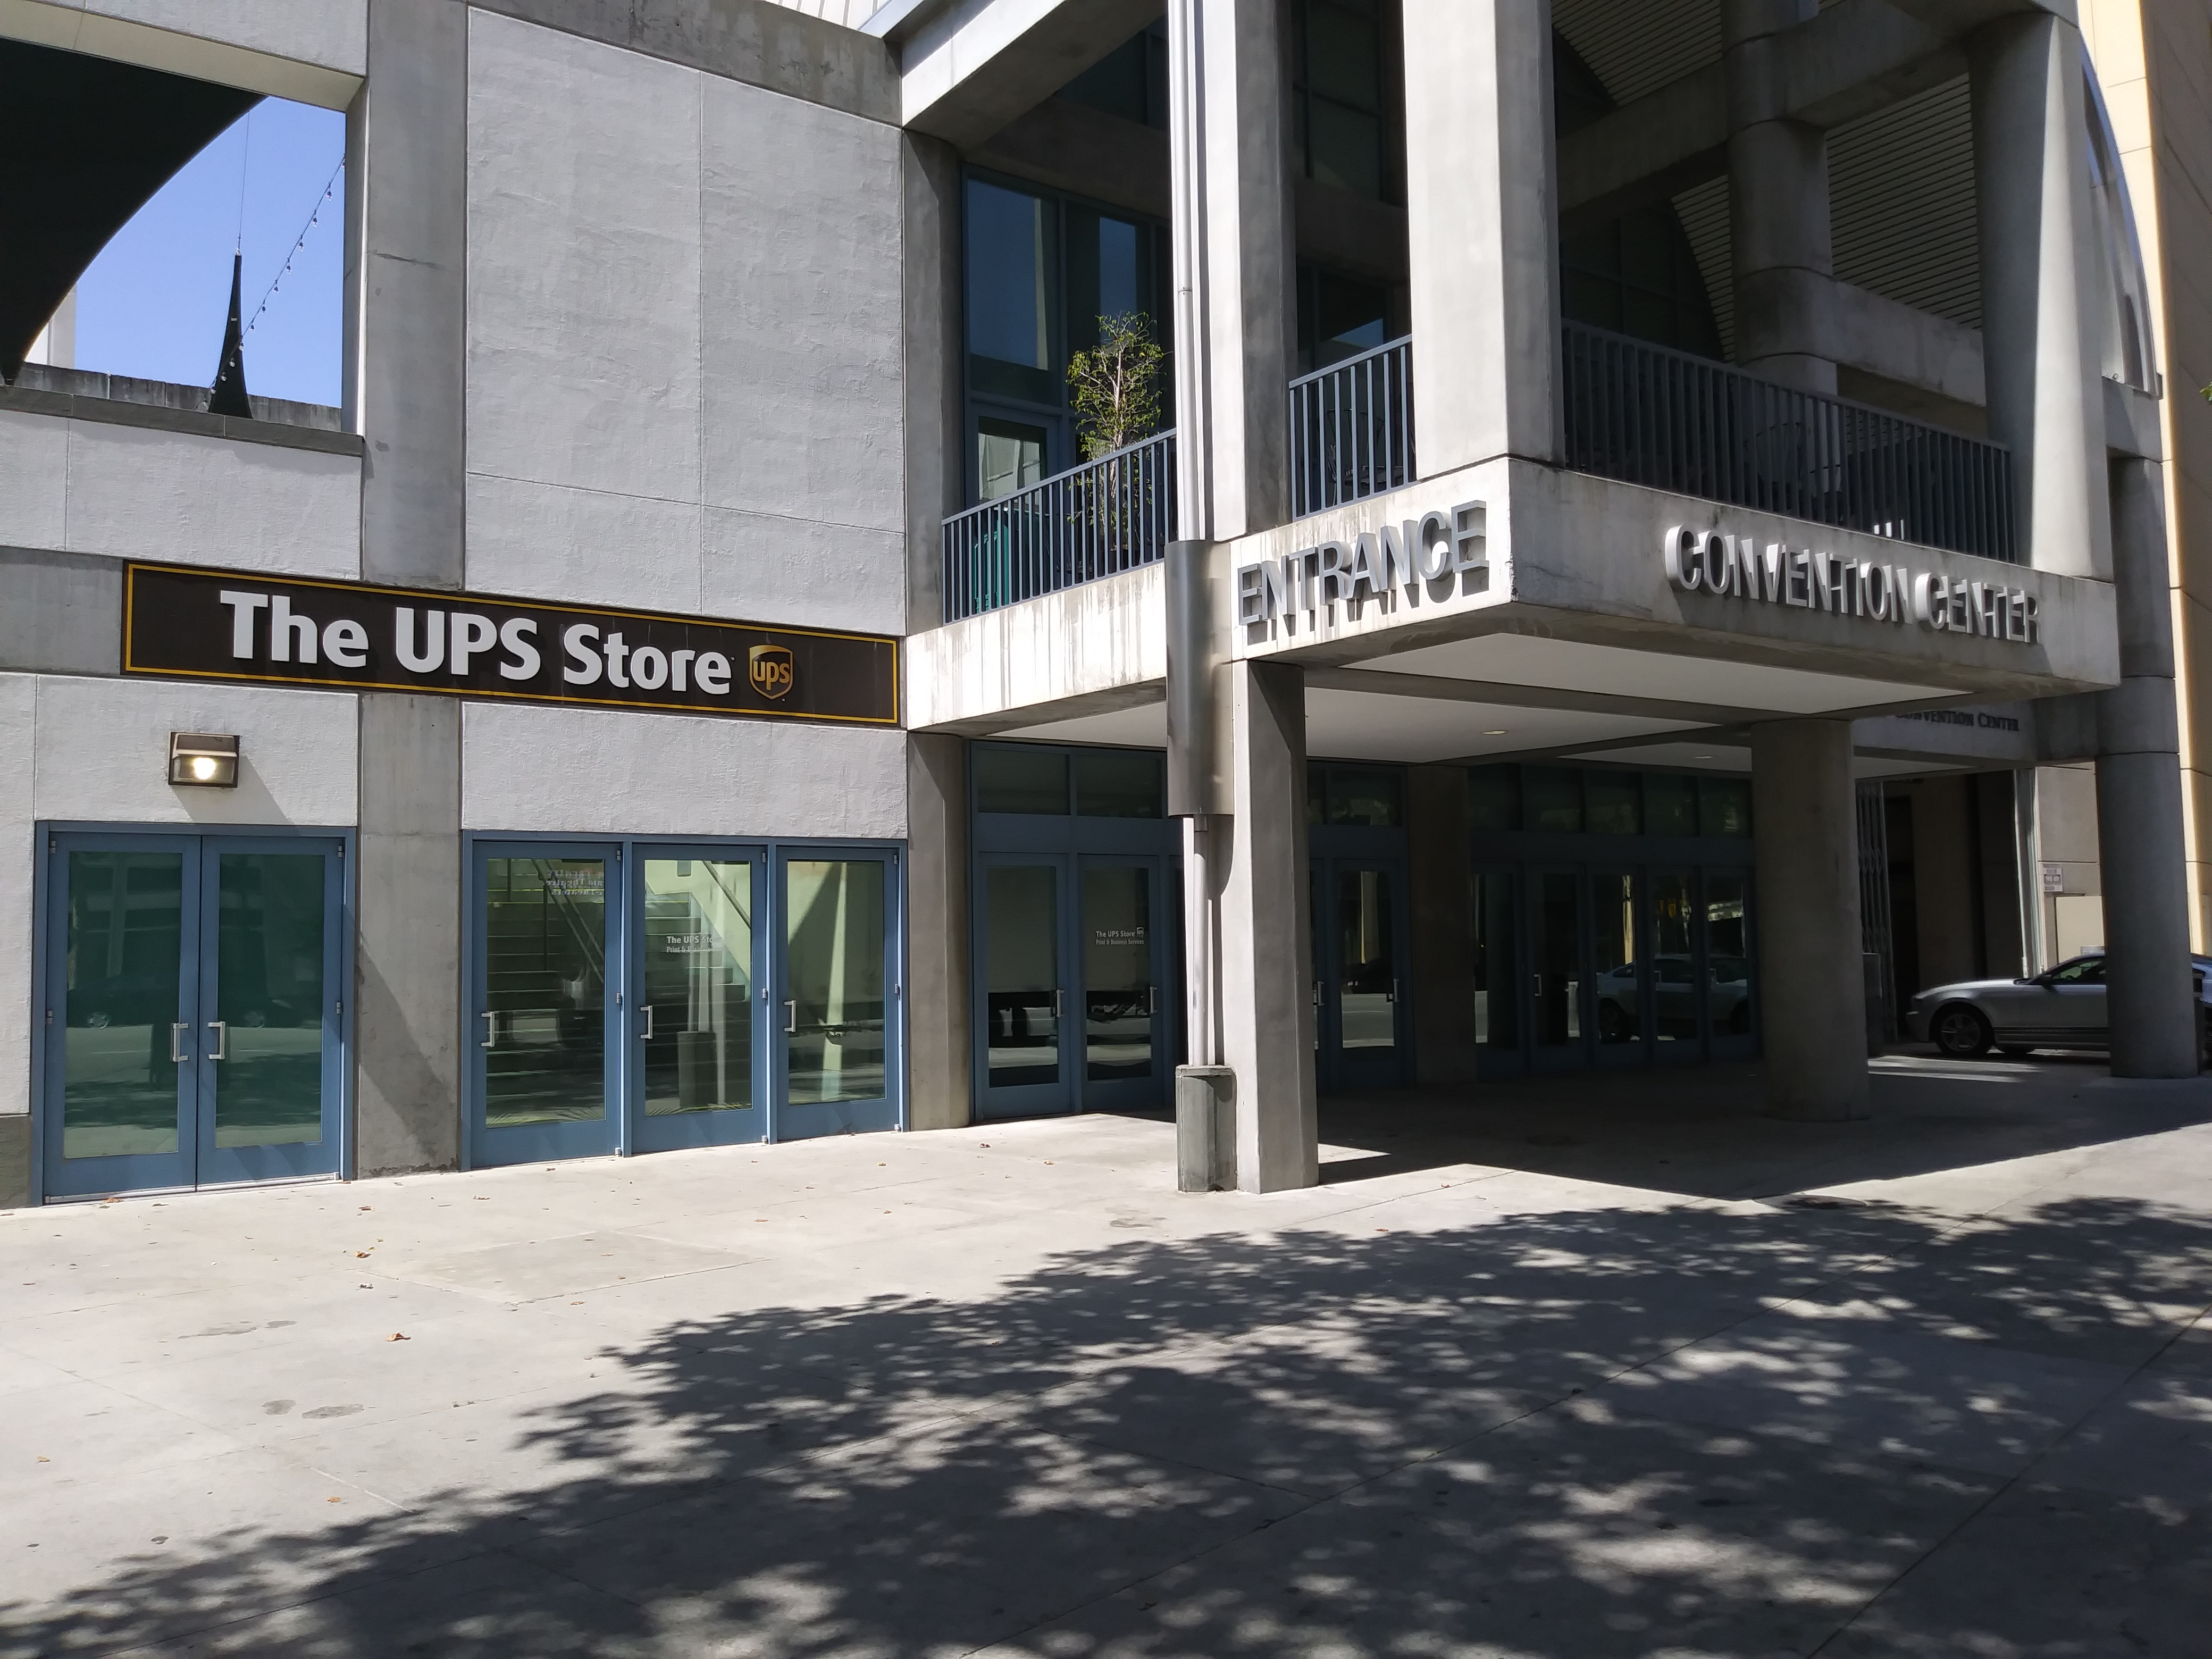 The UPS Store image 2